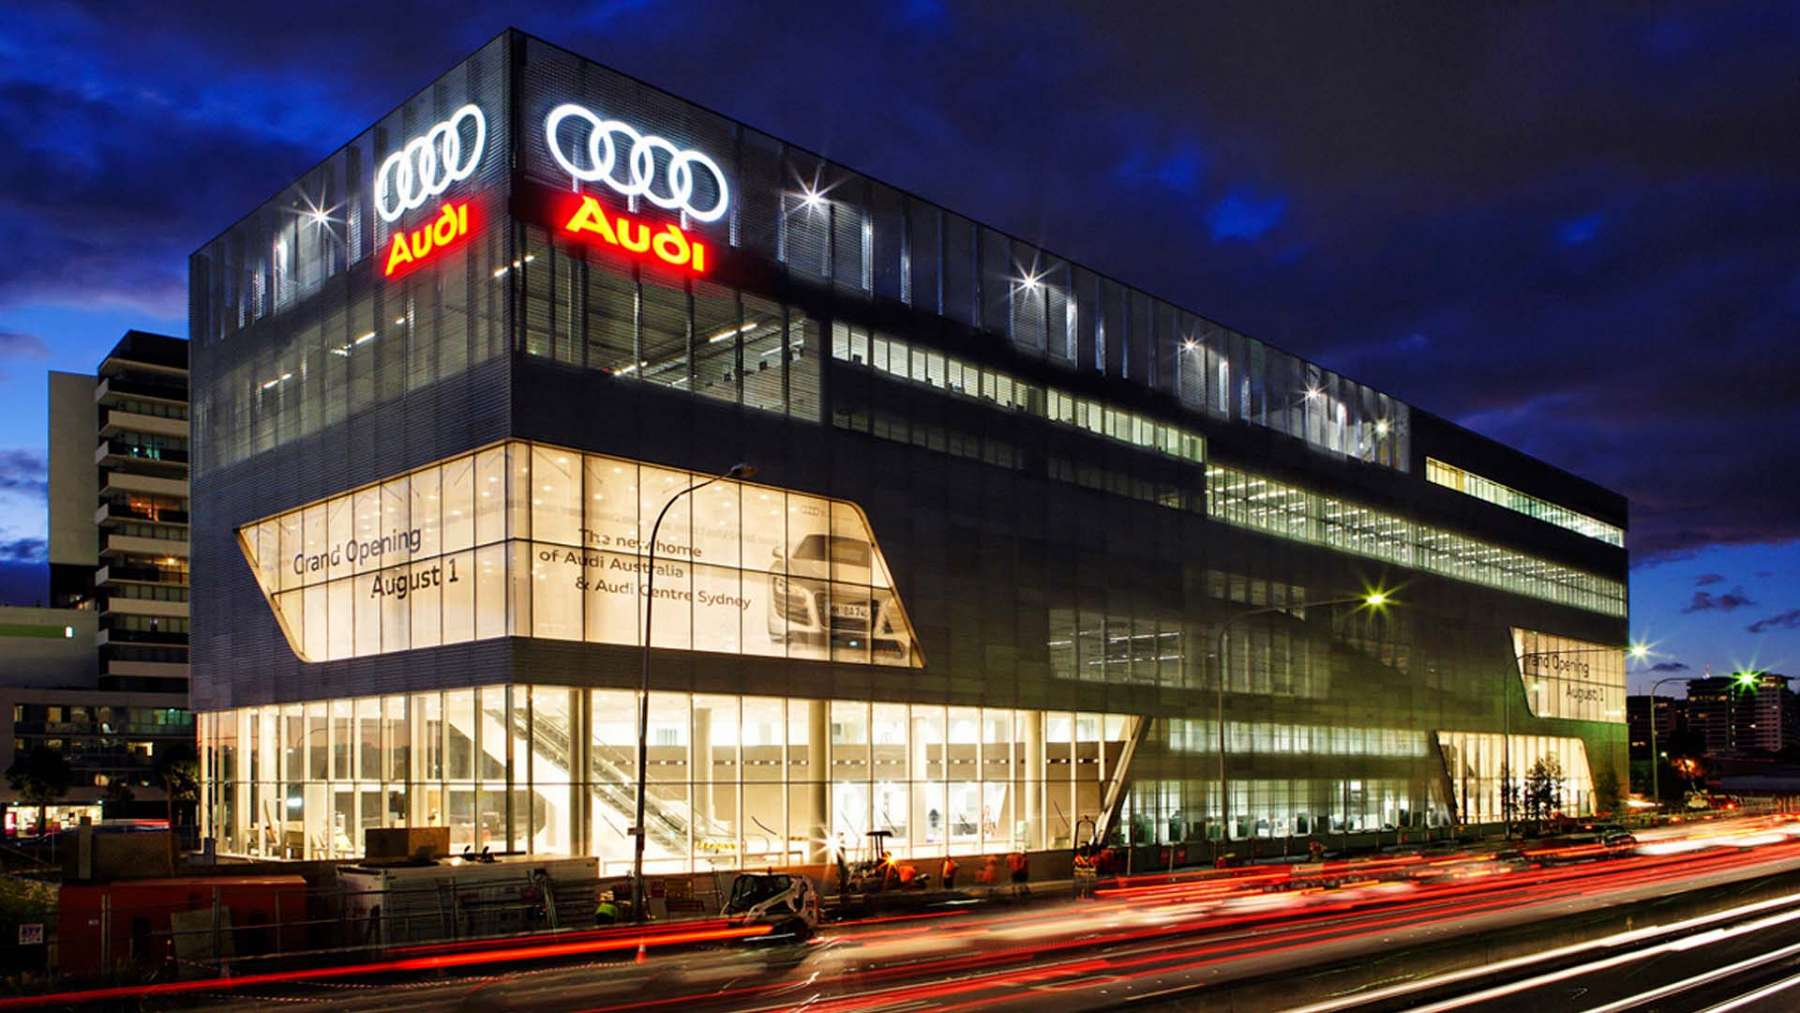 Audi Lighthouse, national headquarters and showroom in Sydney, Australia